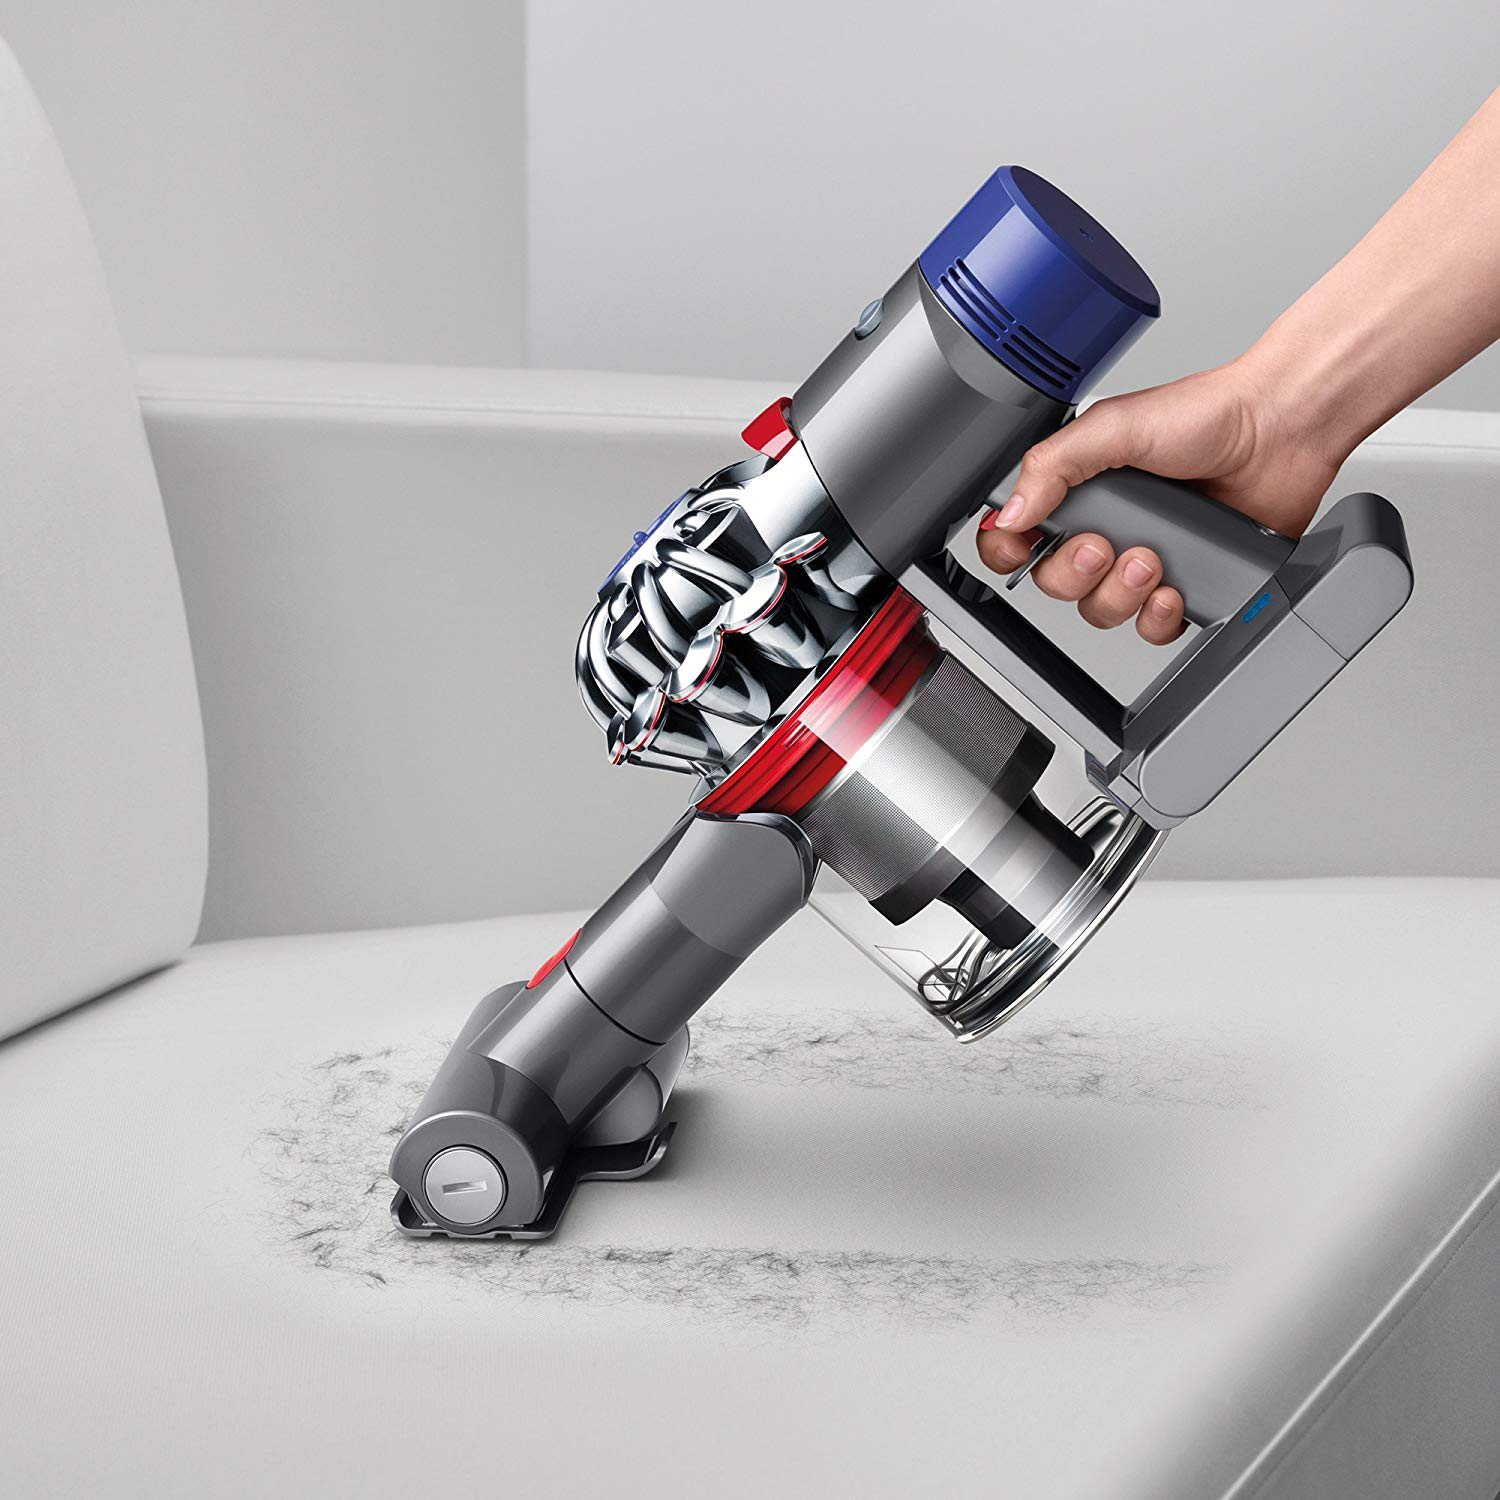 Best Cordless Vacuum for Pet Hair - Dyson V7 Animal